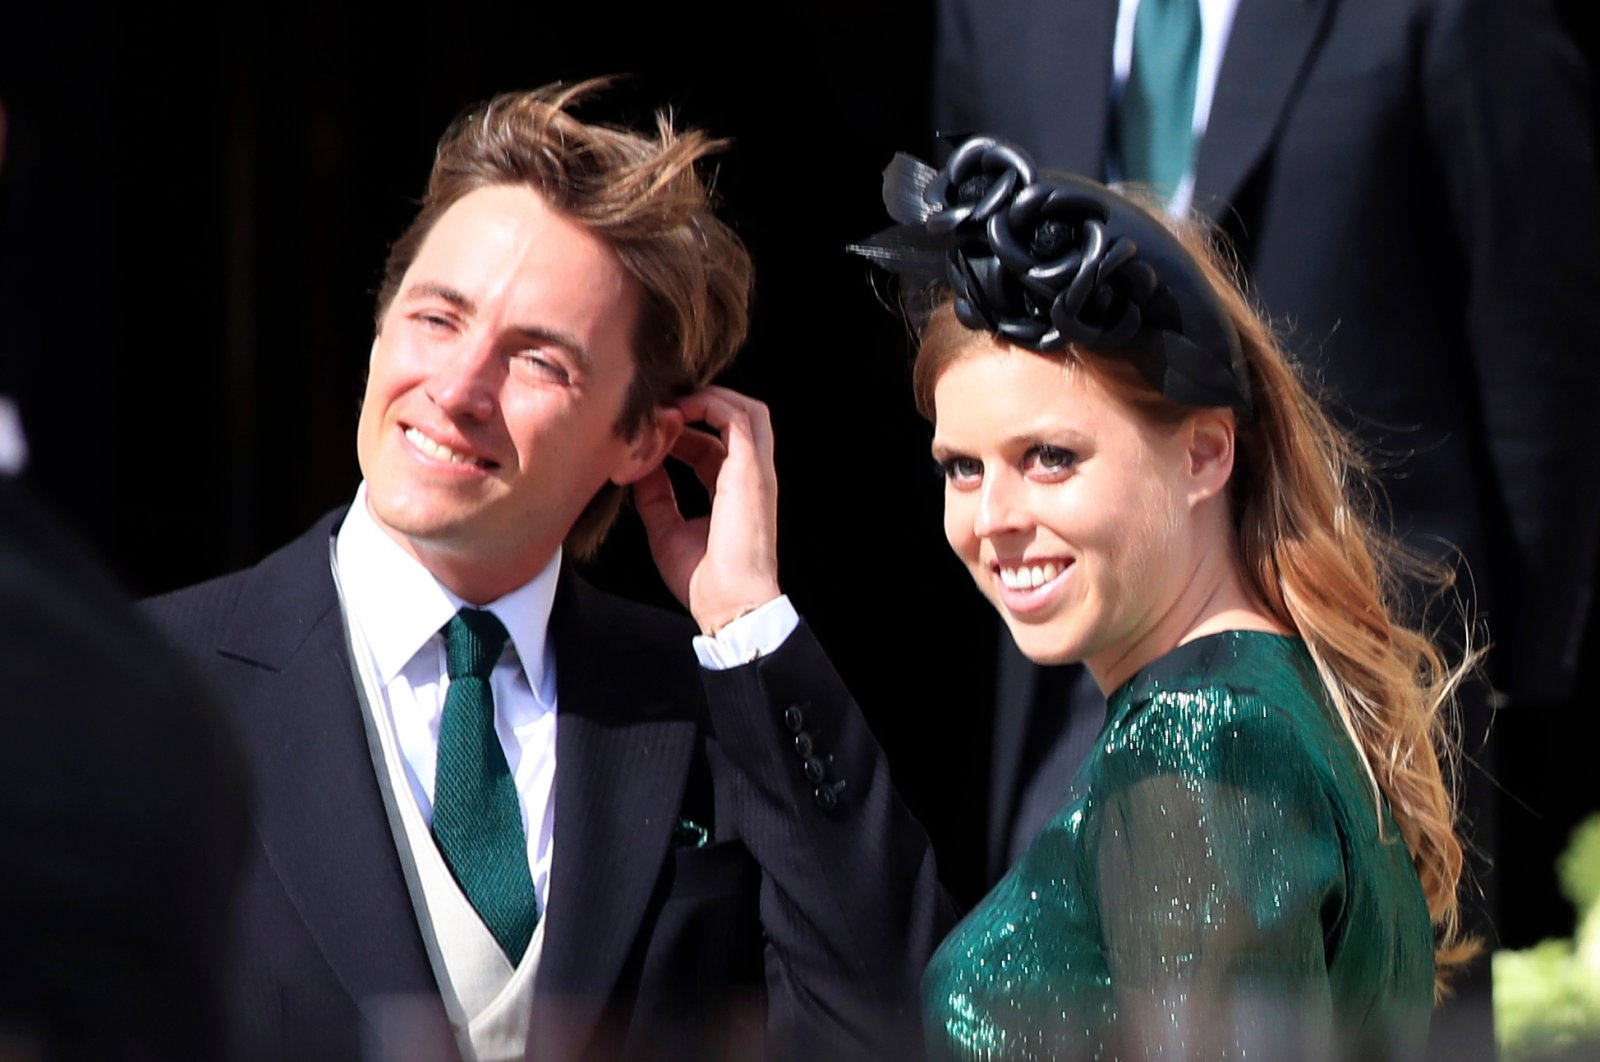 Britain's Princess Beatrice with her fiance, Edoardo Mapelli Mozzi, attend the wedding of Ellie Goulding and Caspar Jopling, in York, England, Aug. 31, 2019. (AP Photo)